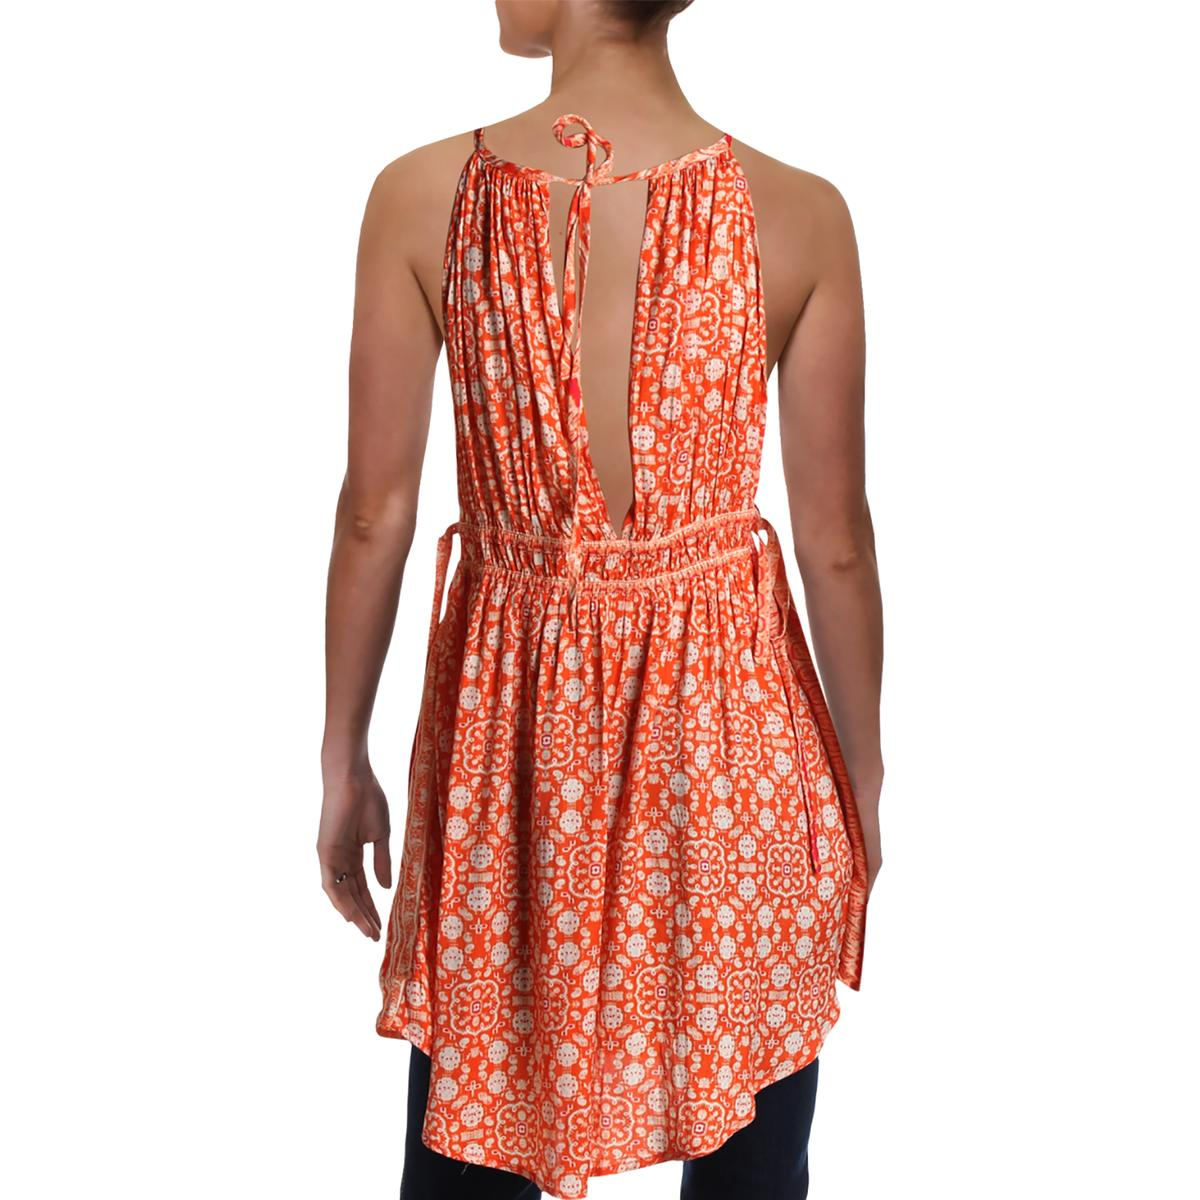 Free People Womens Mid Summers Day Printed Halter Tunic Top Shirt BHFO 8699